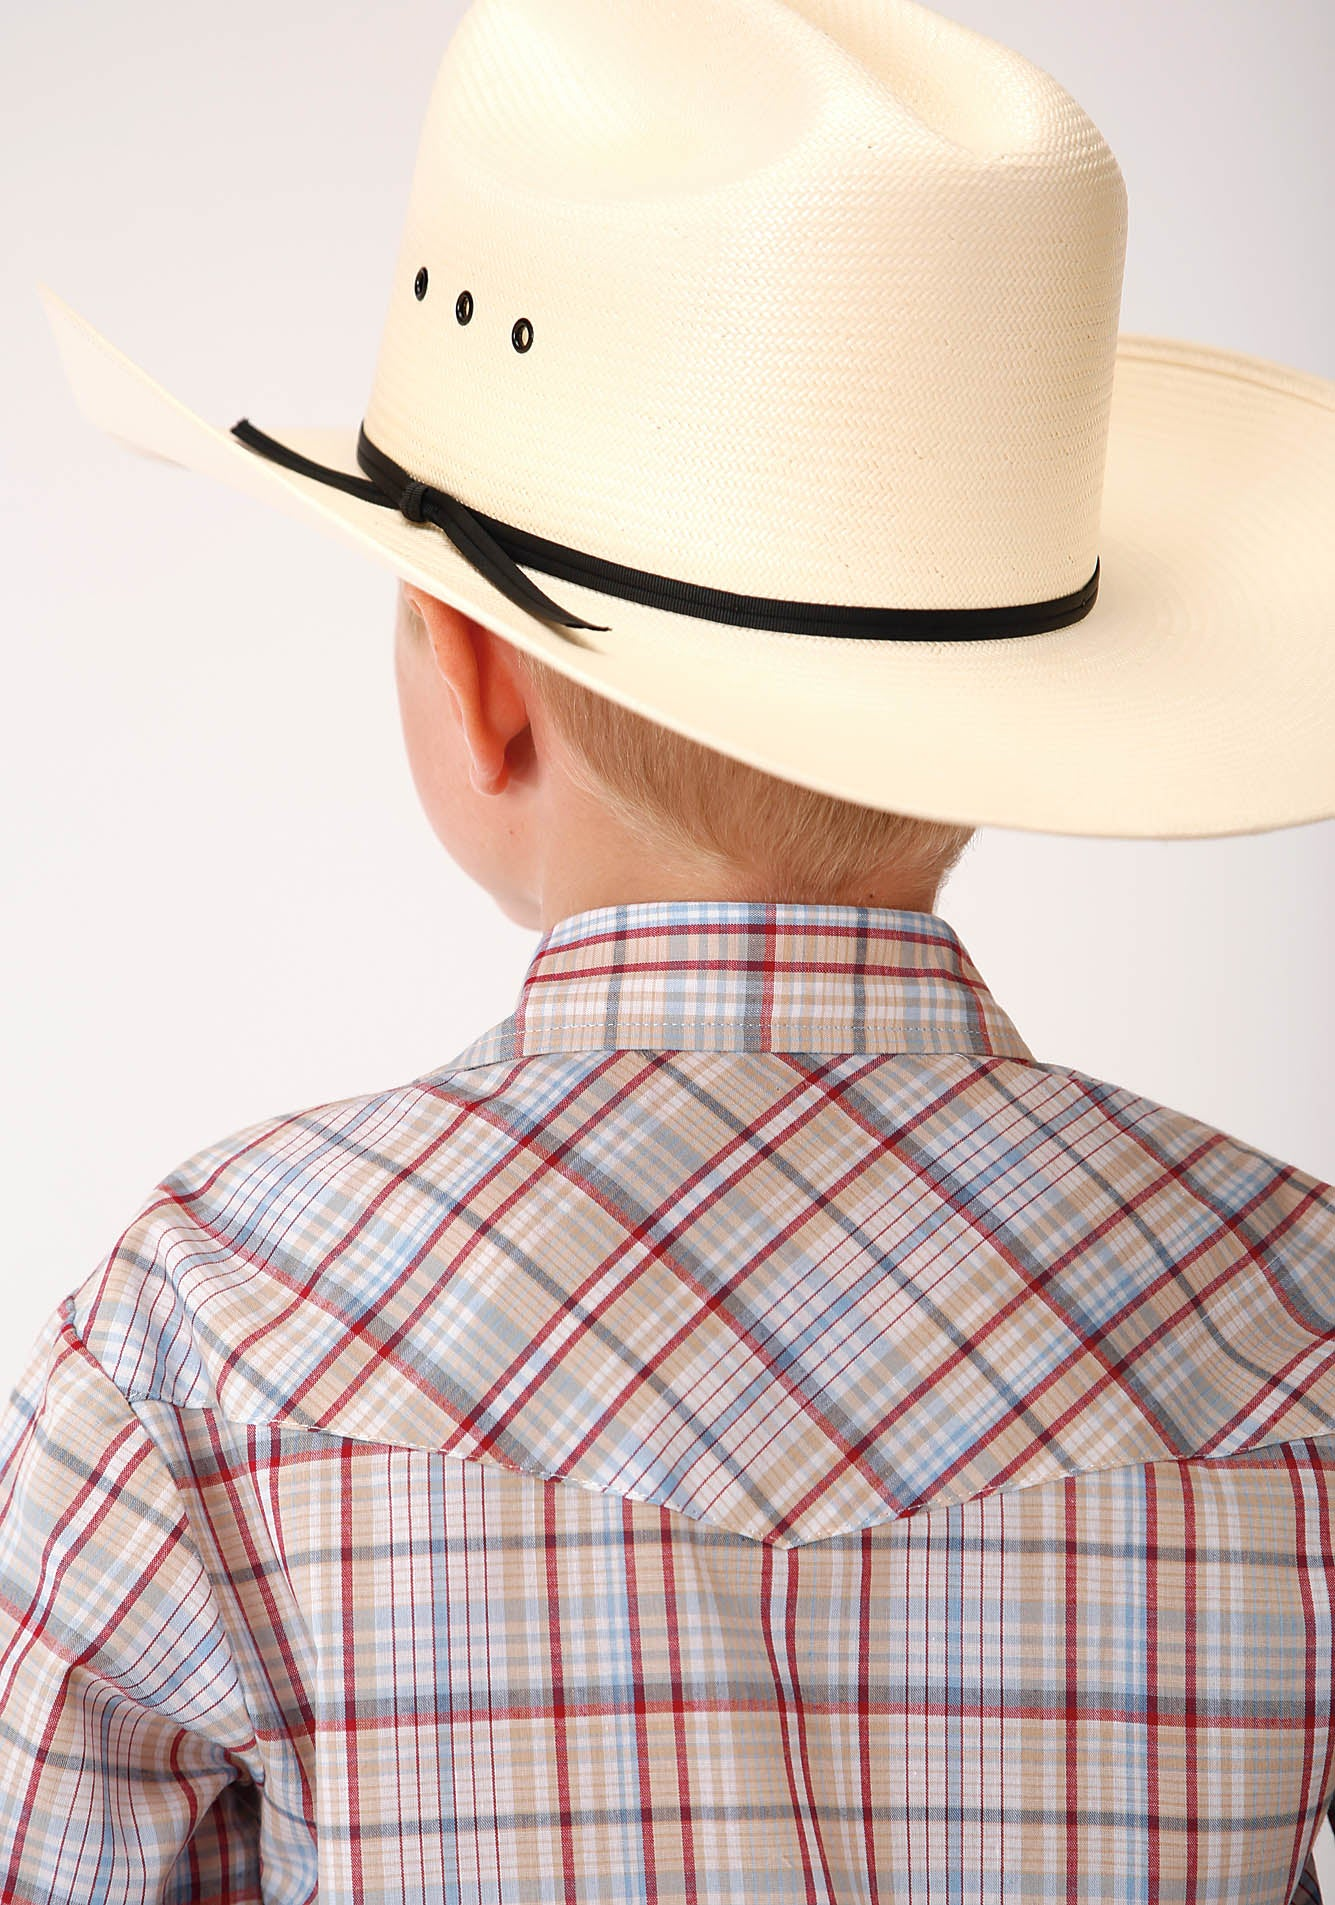 ROPER BOYS TAN 00209 TAN, RED, BLUE AND WHITE PLAID KARMAN CLASSICS- 55/45 PLAIDS LONG SLEEVE